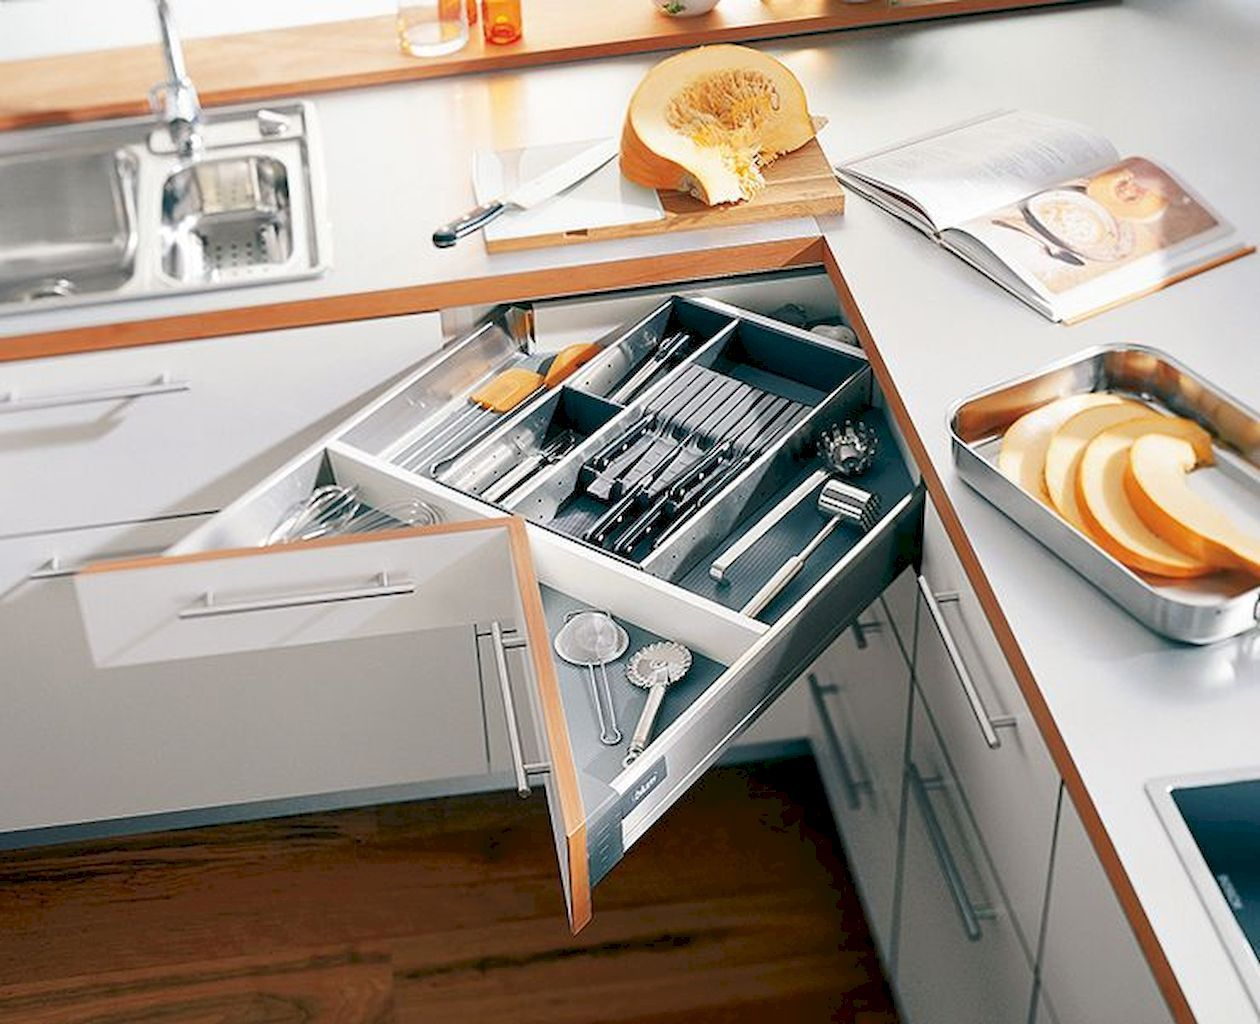 Astonishing Storage Ideas For Small Kitchens That Look Compact And Efficient Elonahome Com Space Saving Kitchen Kitchen Space Savers Kitchen Remodel Small